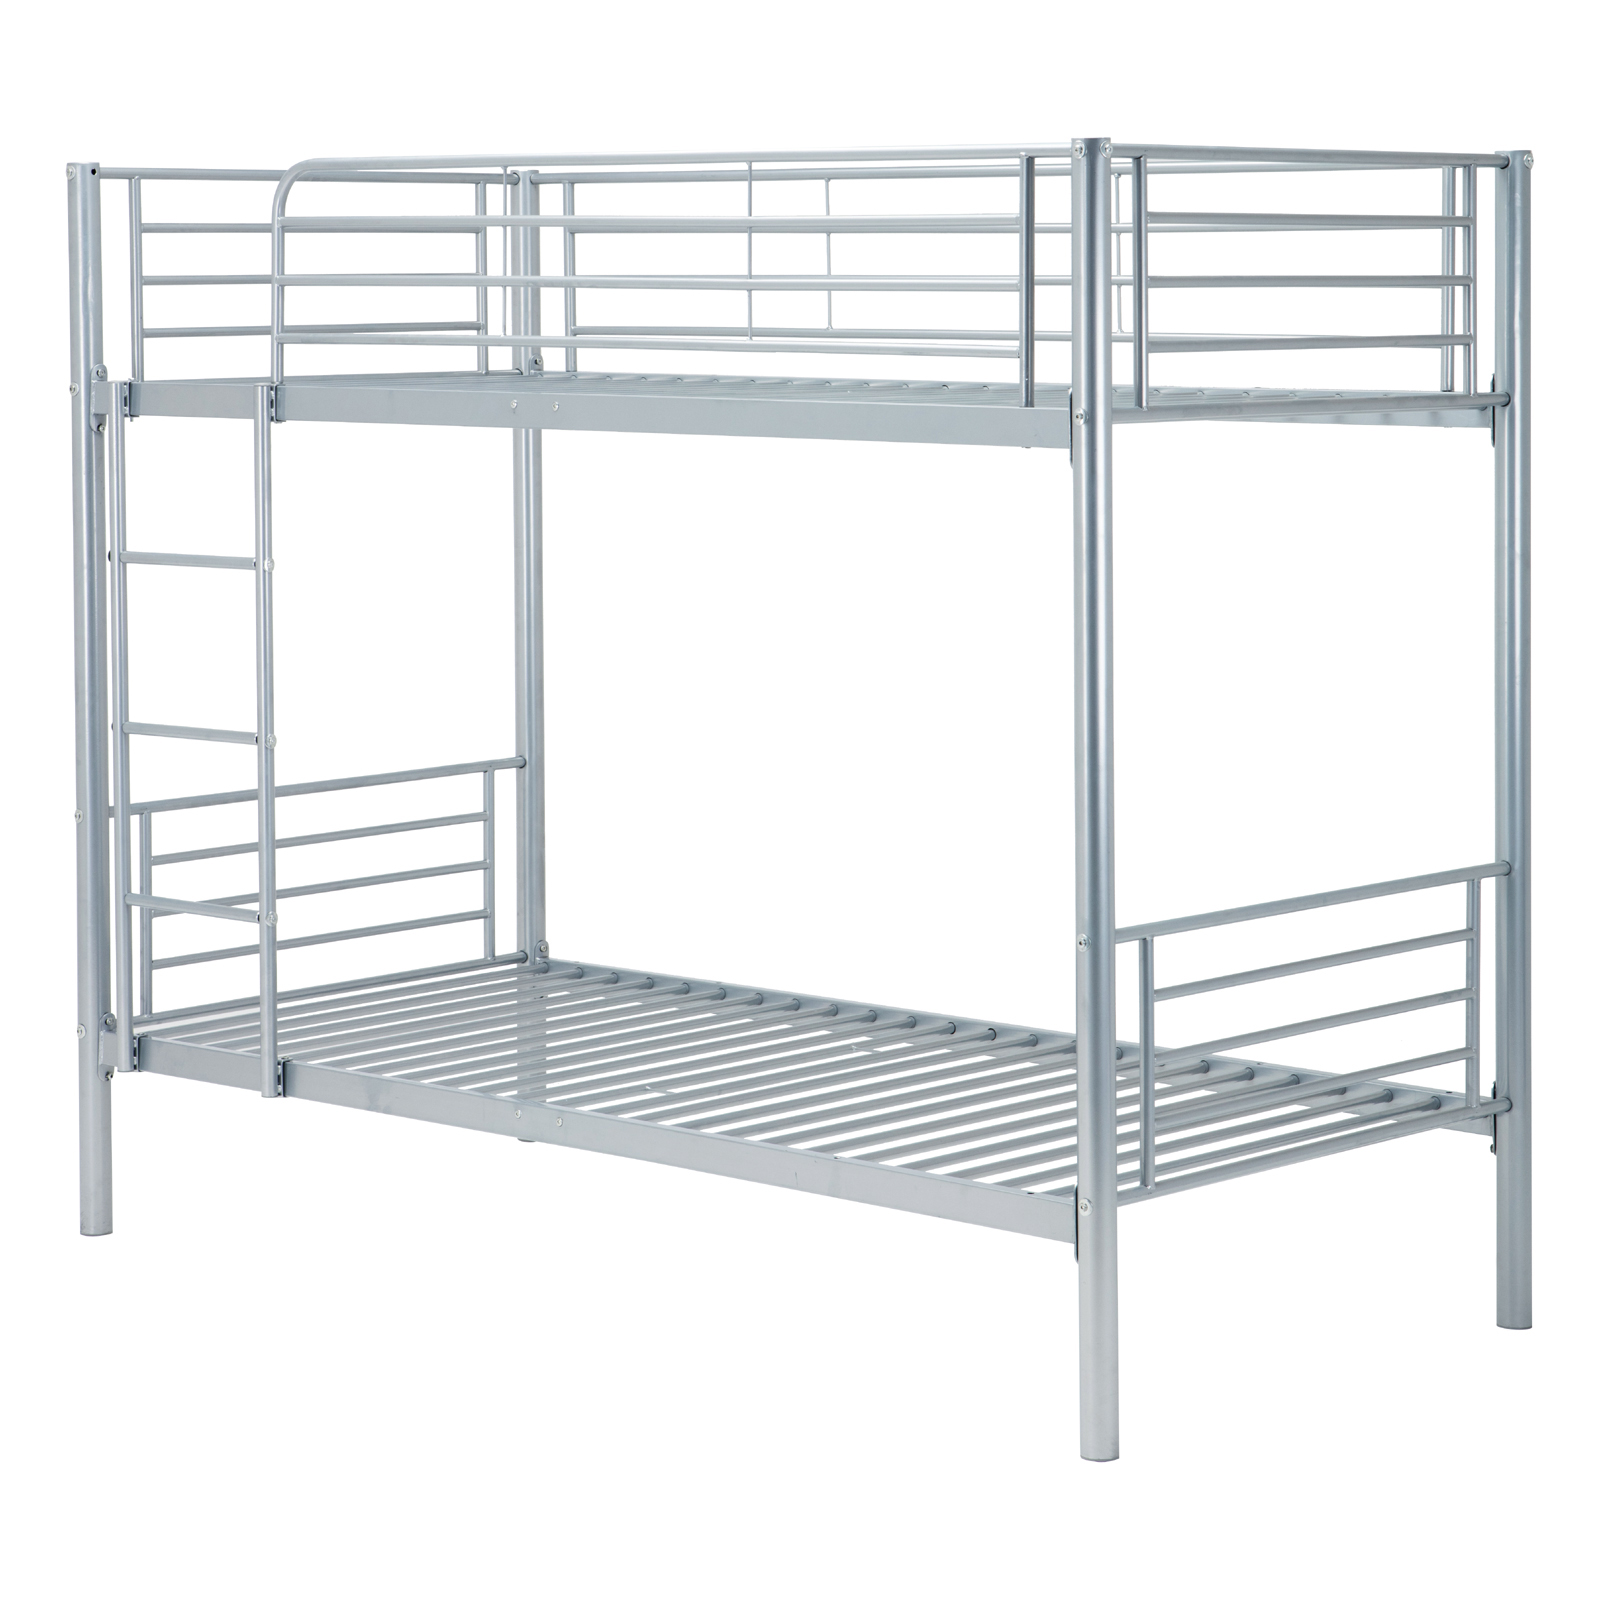 metal bunk beds frame twin over twin ladder - Metal Bunk Bed Frames